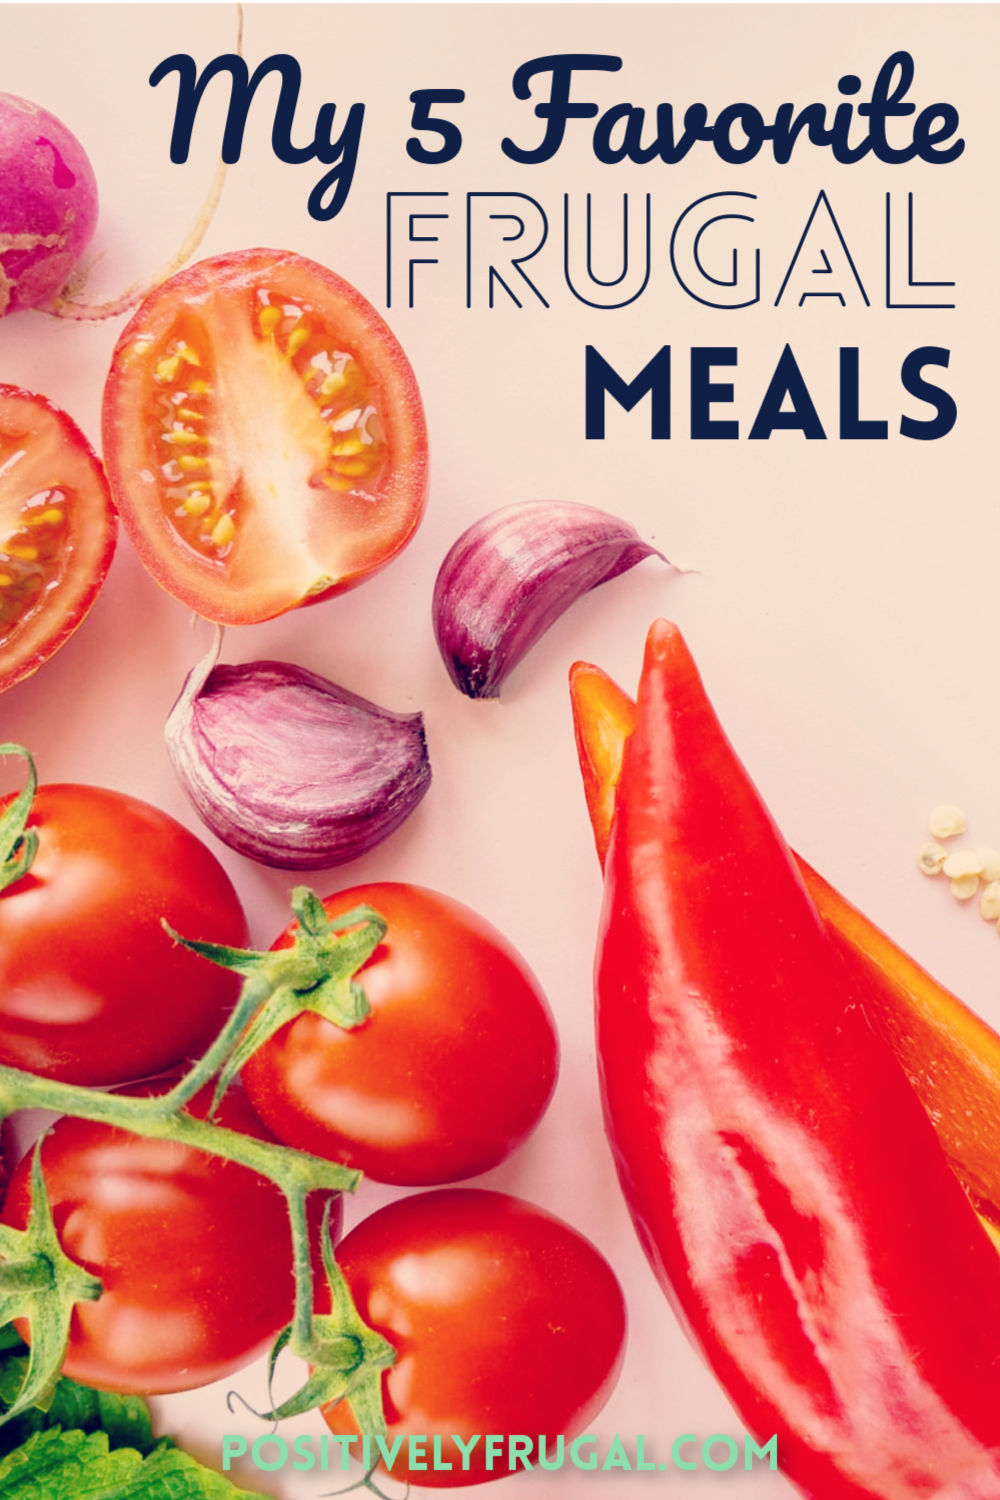 My Five Favorite Frugal Meals by PositivelyFrugal.com